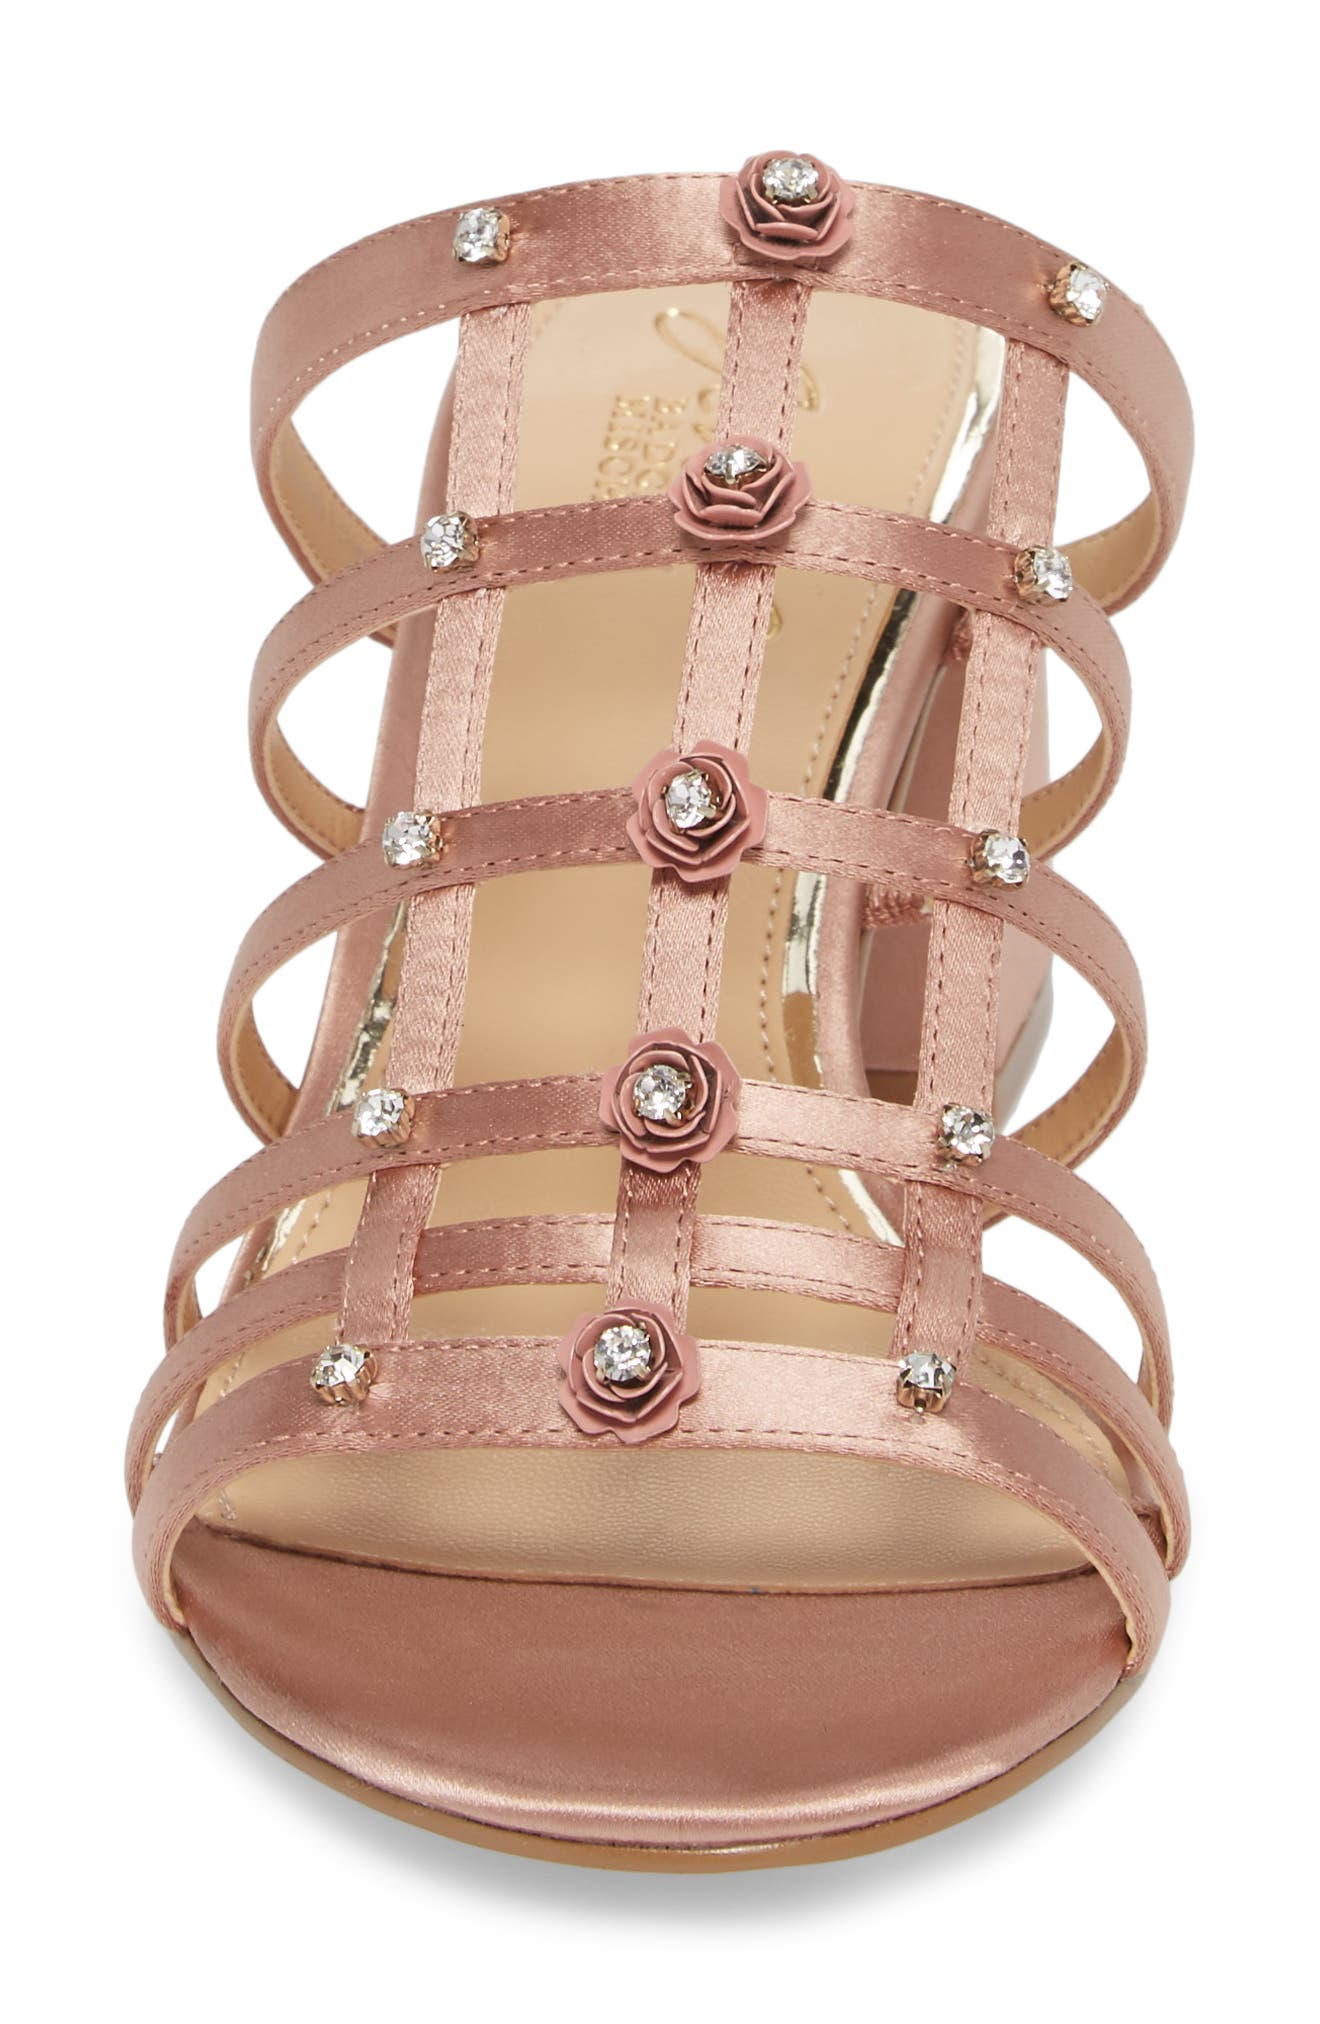 Thorne Crystal Rose Embellished Slide Sandal,                             Alternate thumbnail 4, color,                             DARK BLUSH SATIN